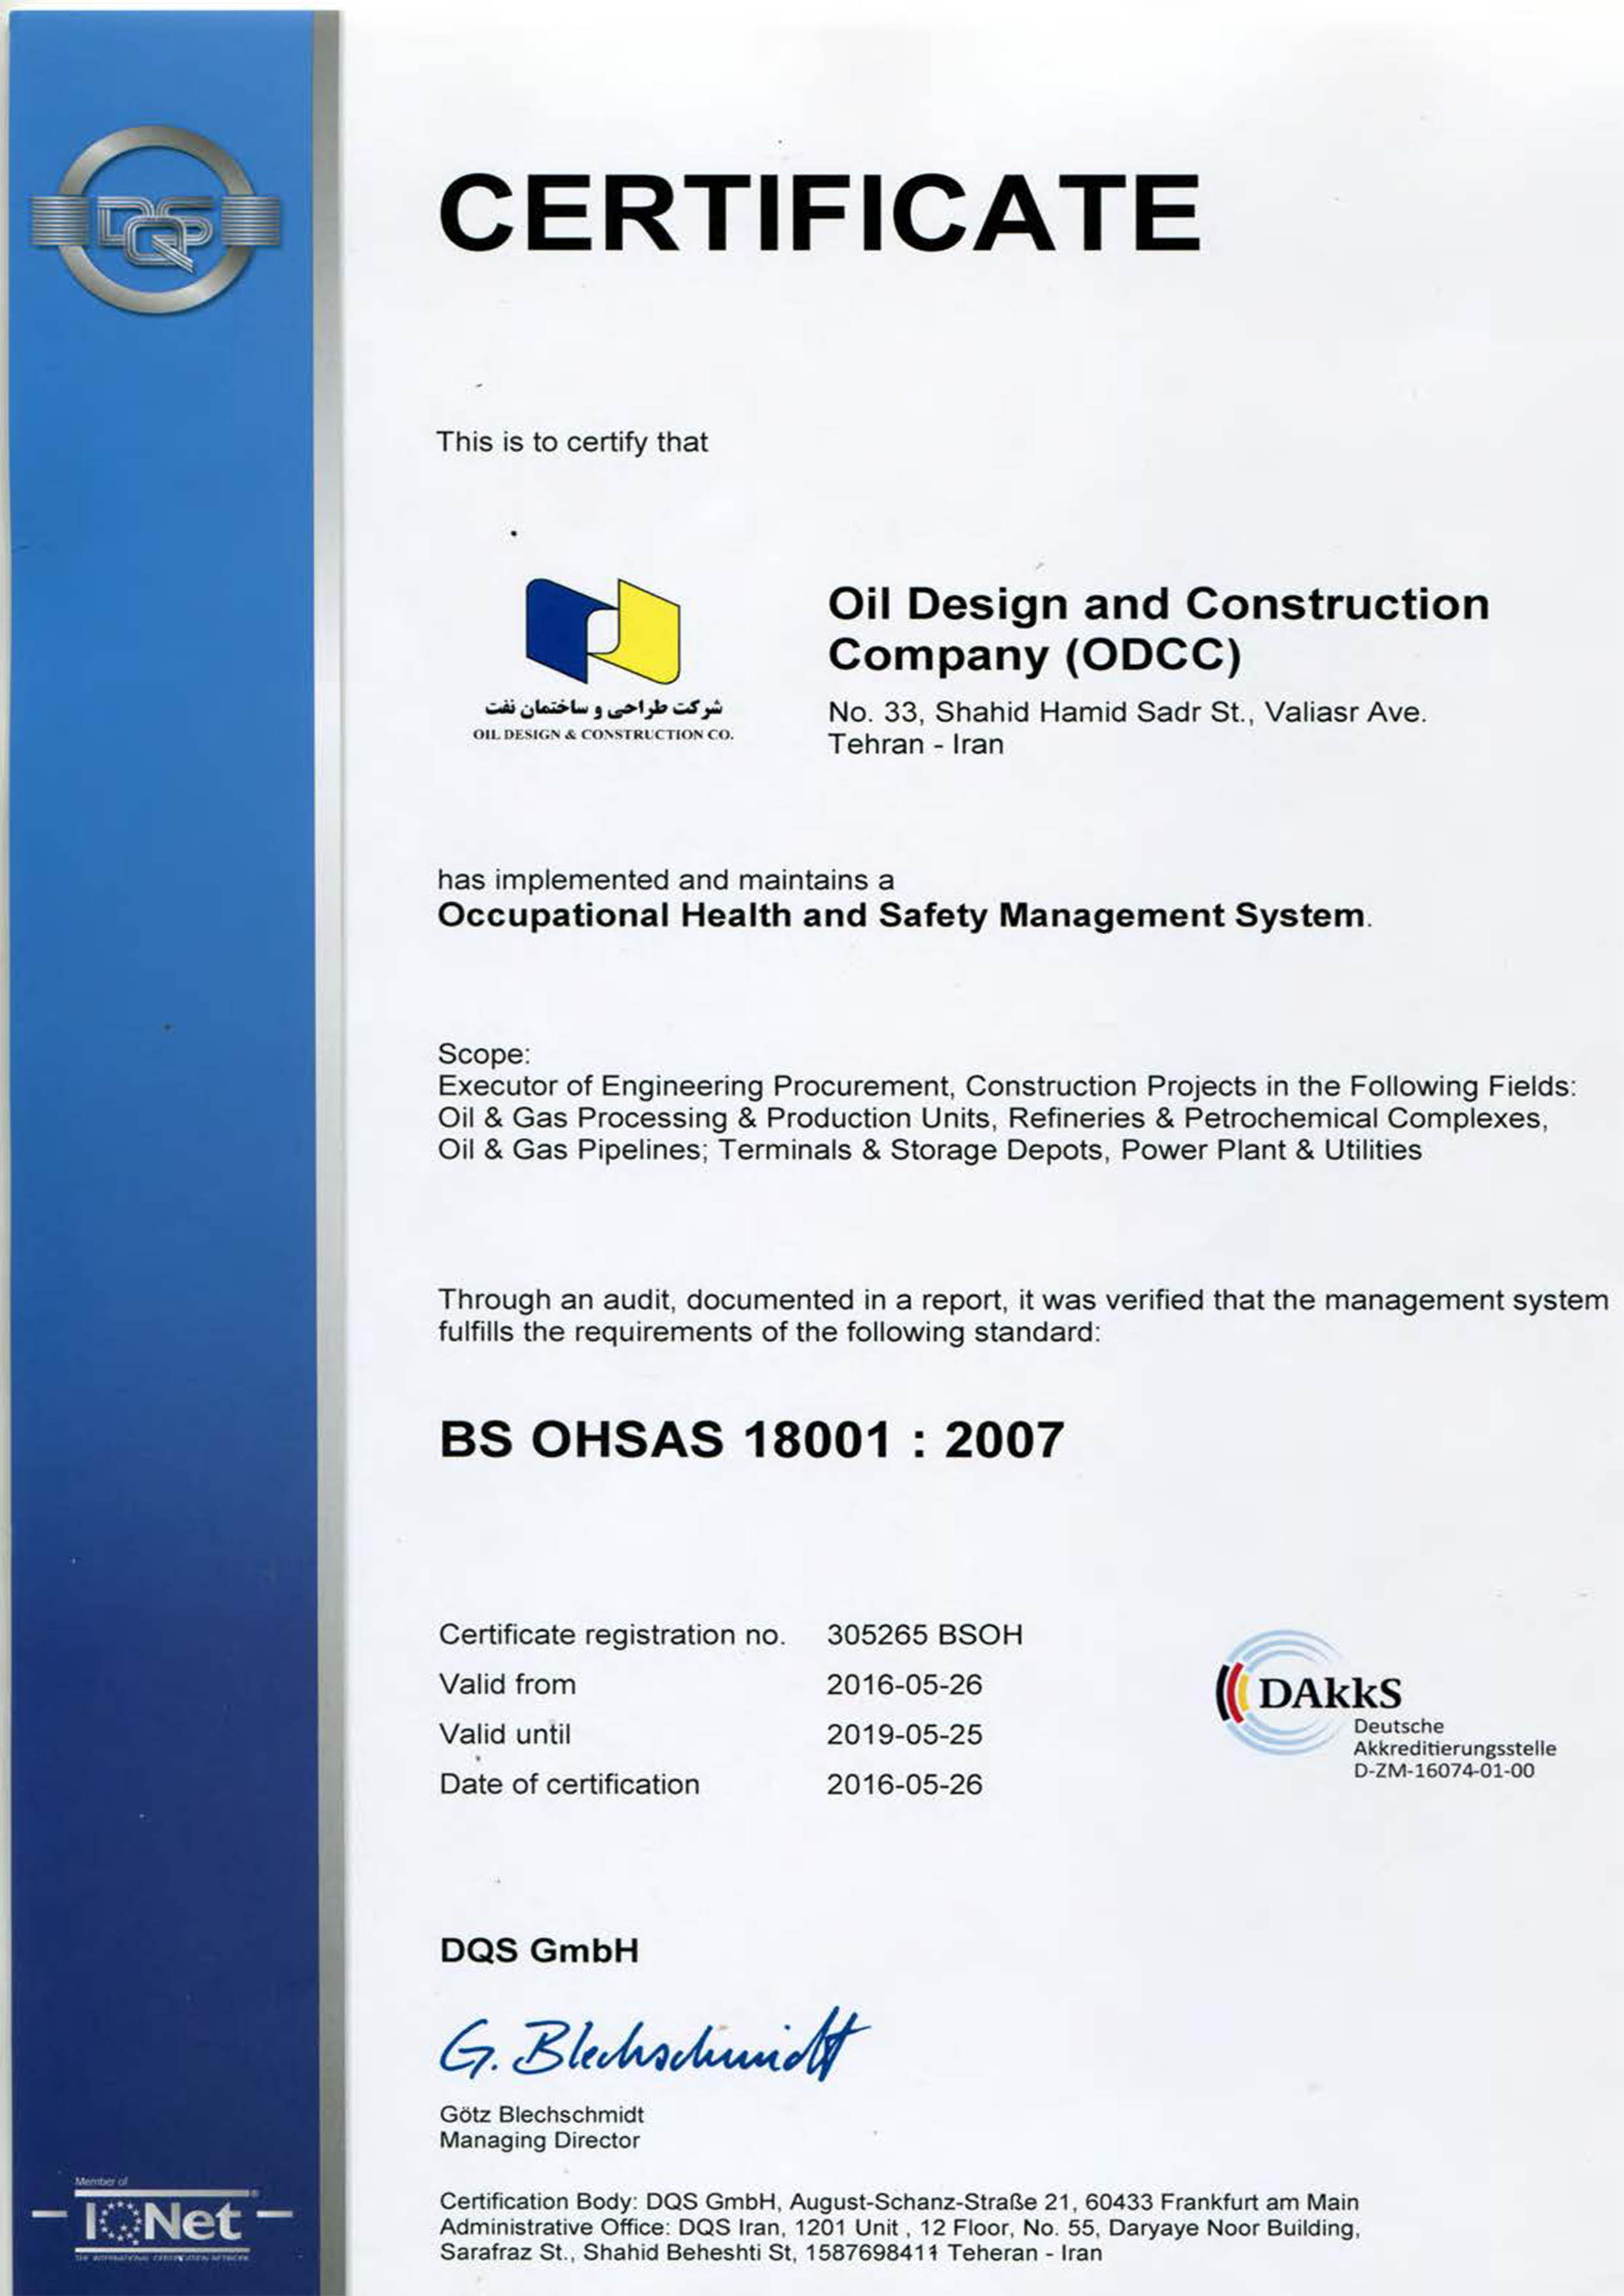 BS OHSAS 18001 2010